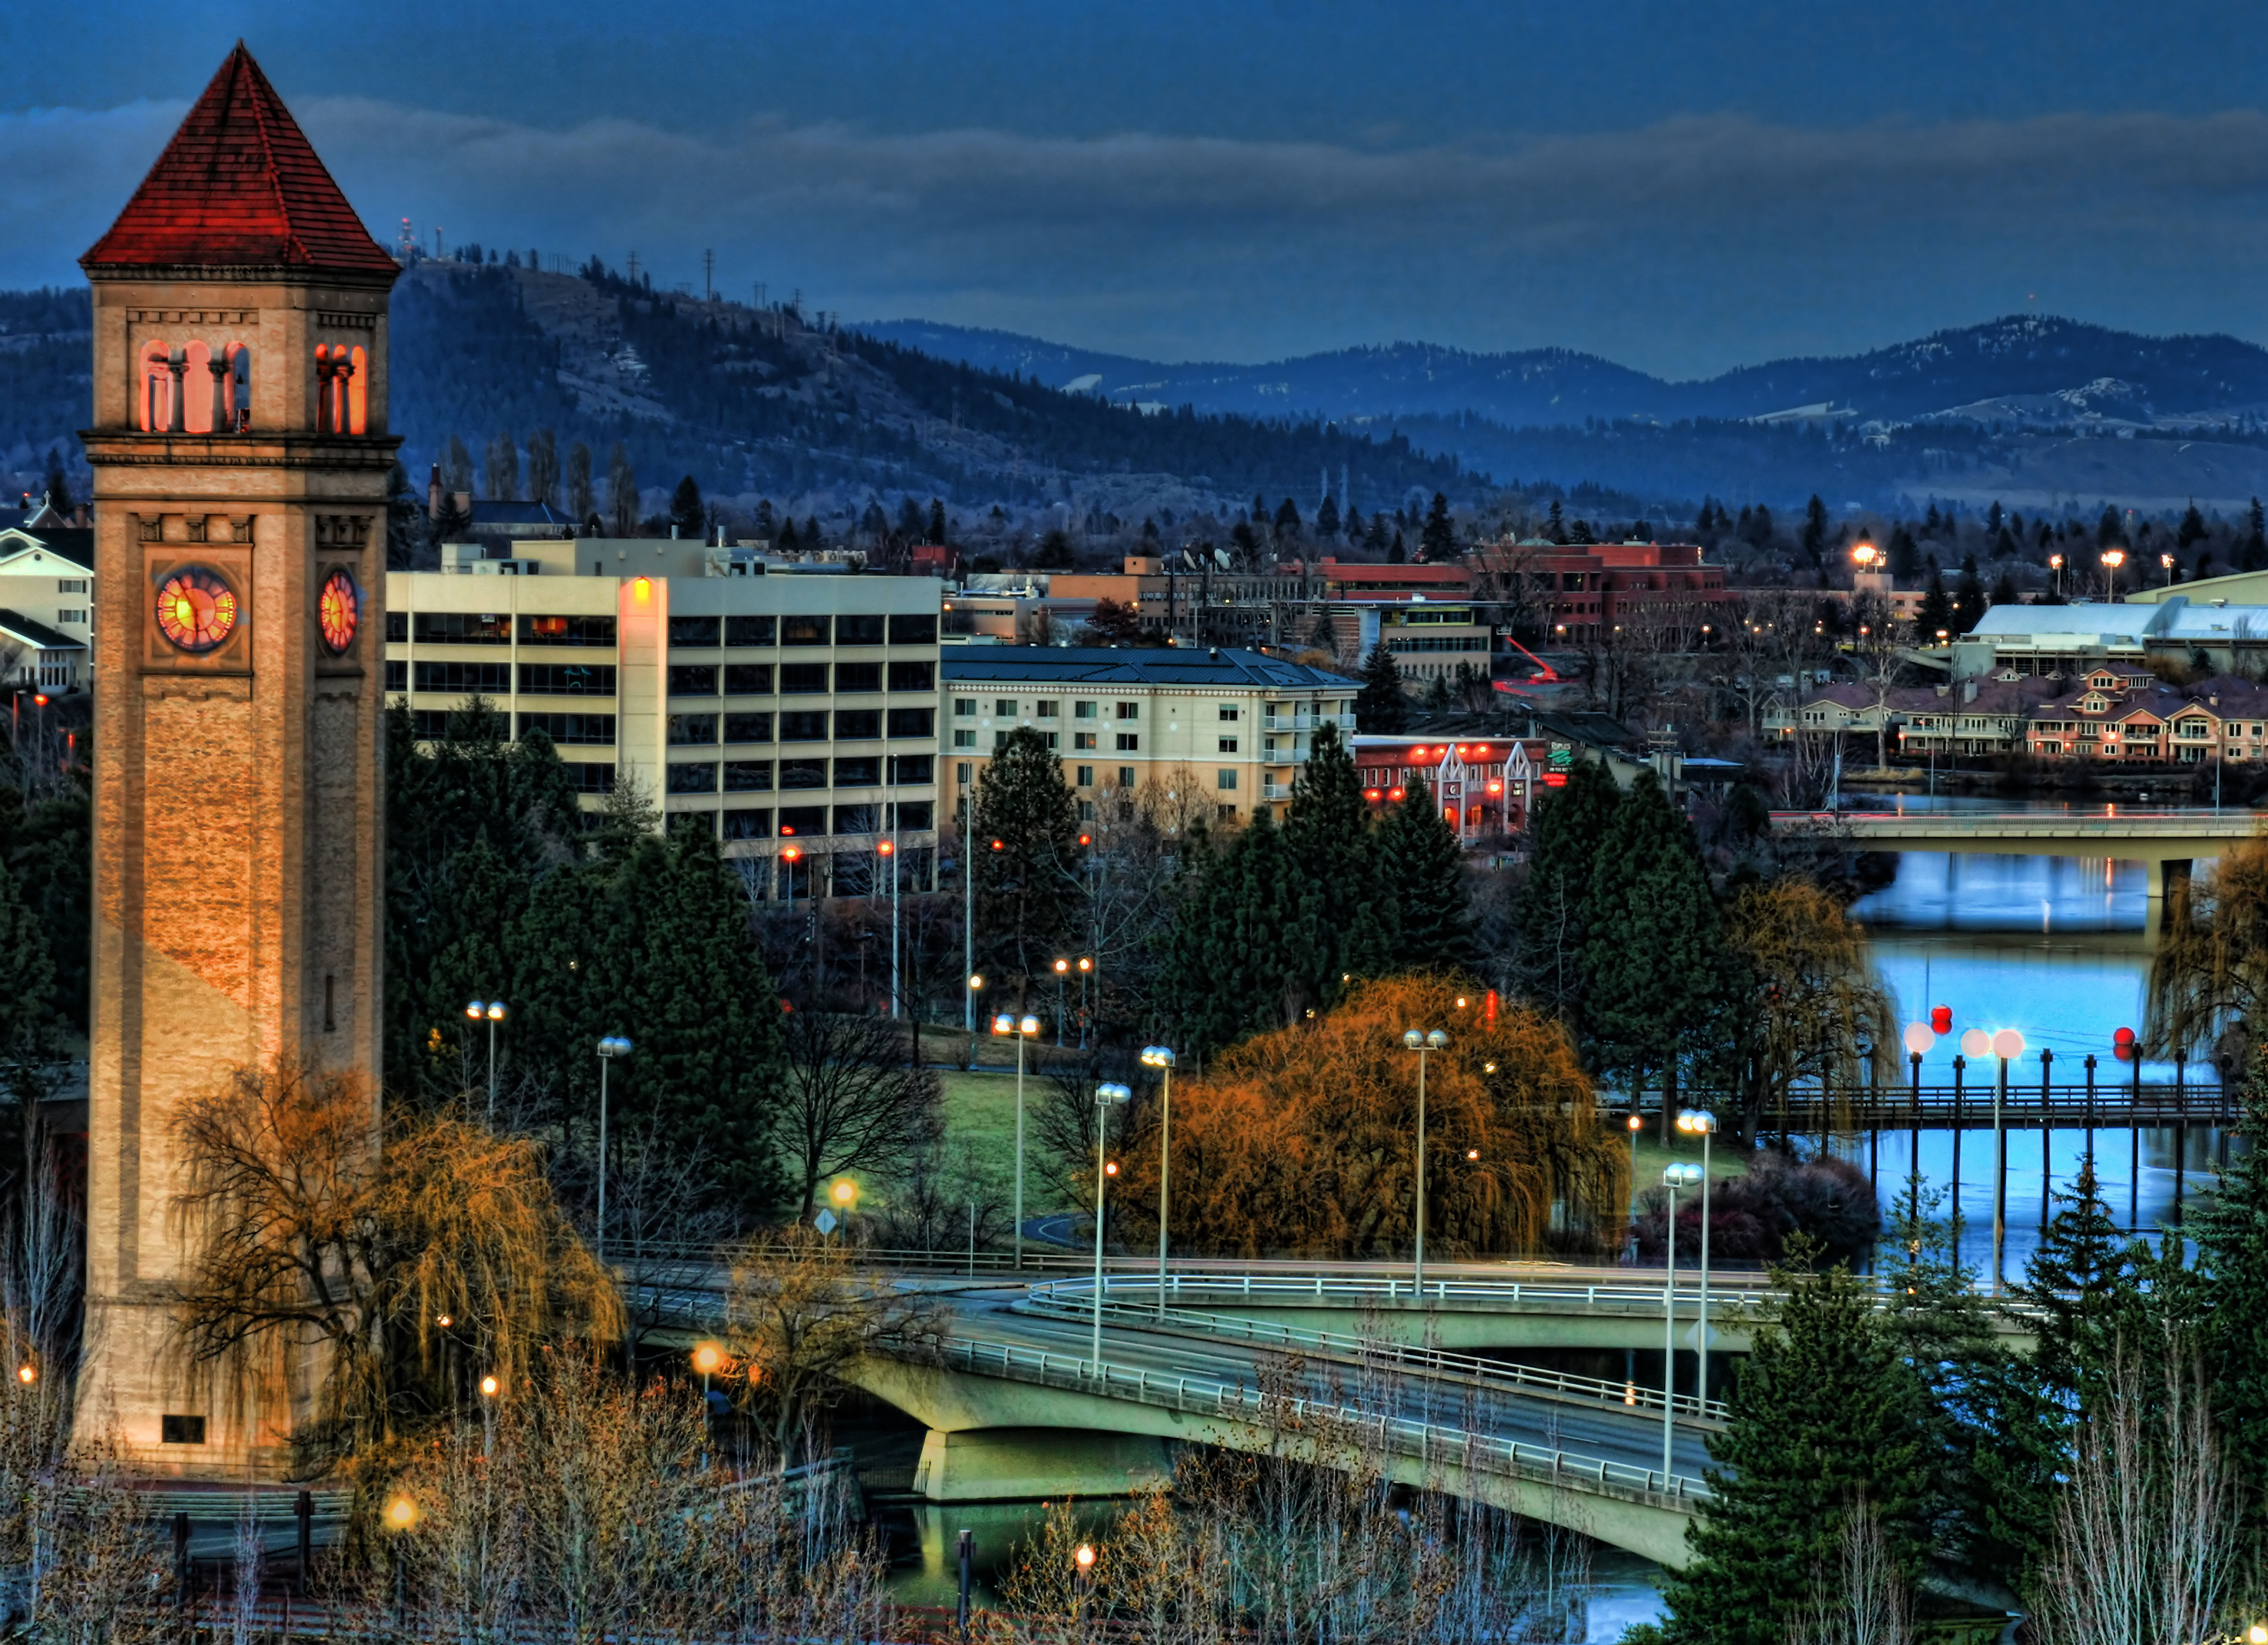 Spokane is a great retirement option if you live in the Pacific Northwest